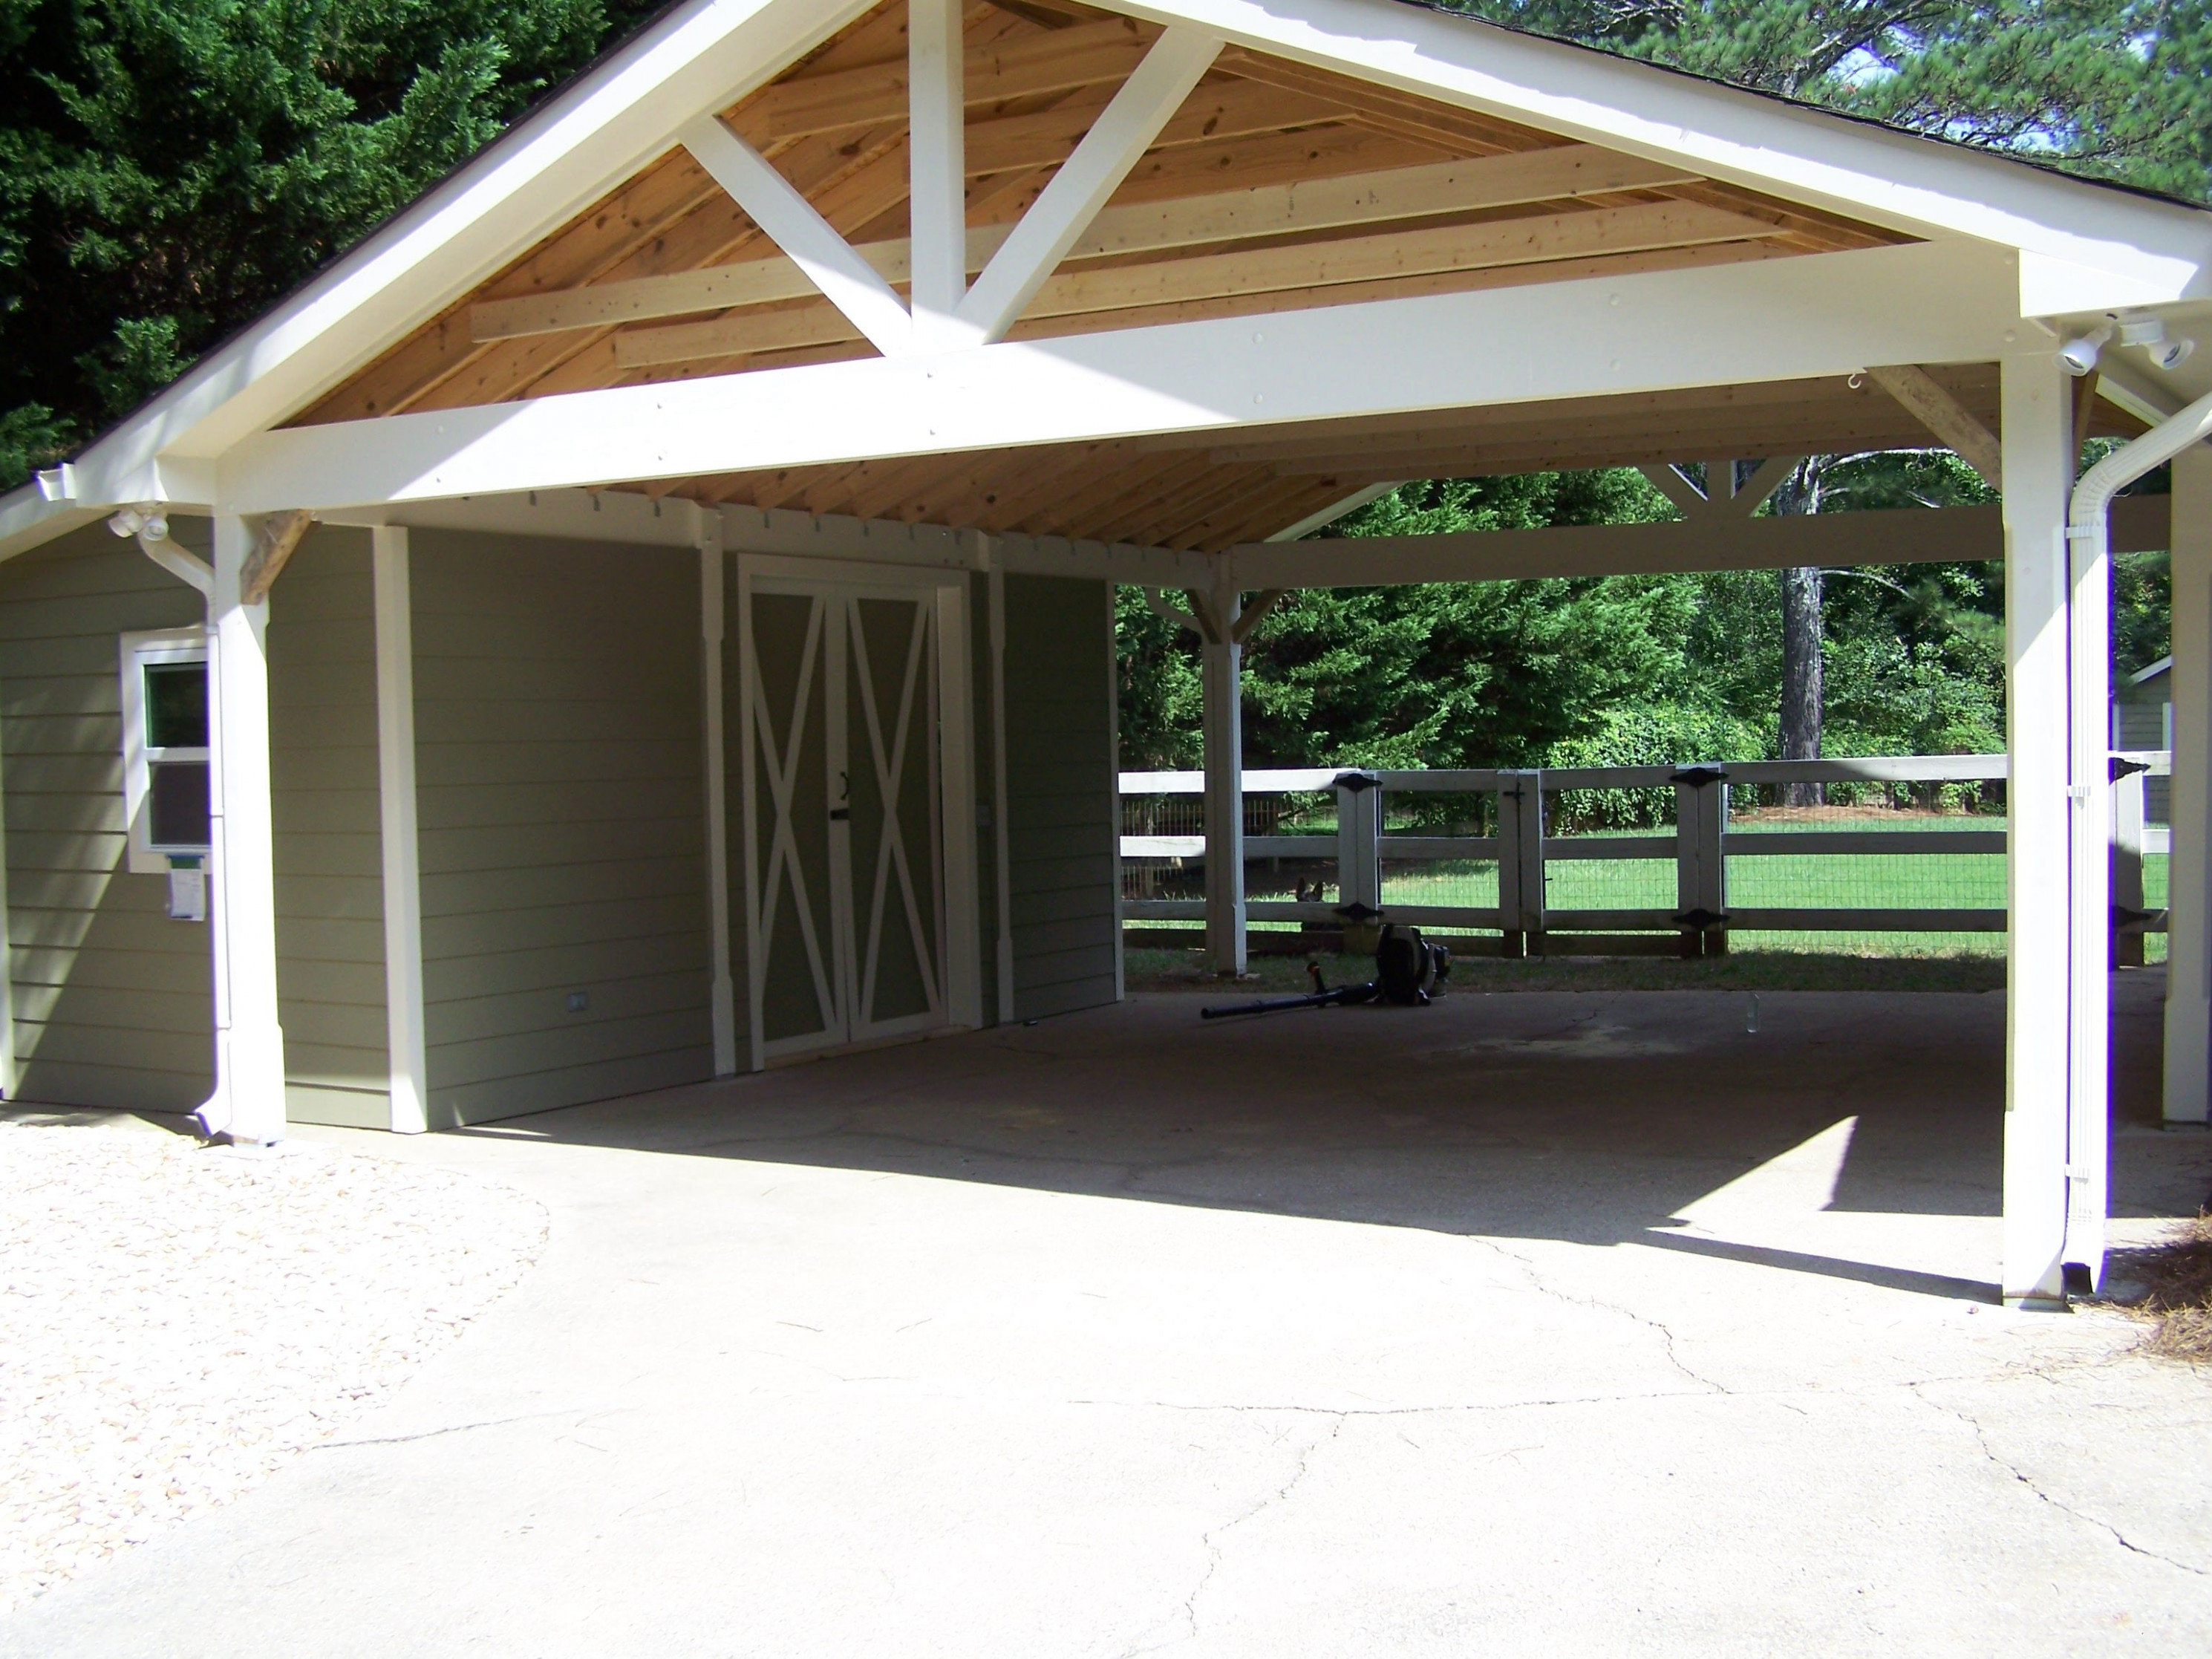 Carport With Attached Building | Sullivan Custom Renovations ..